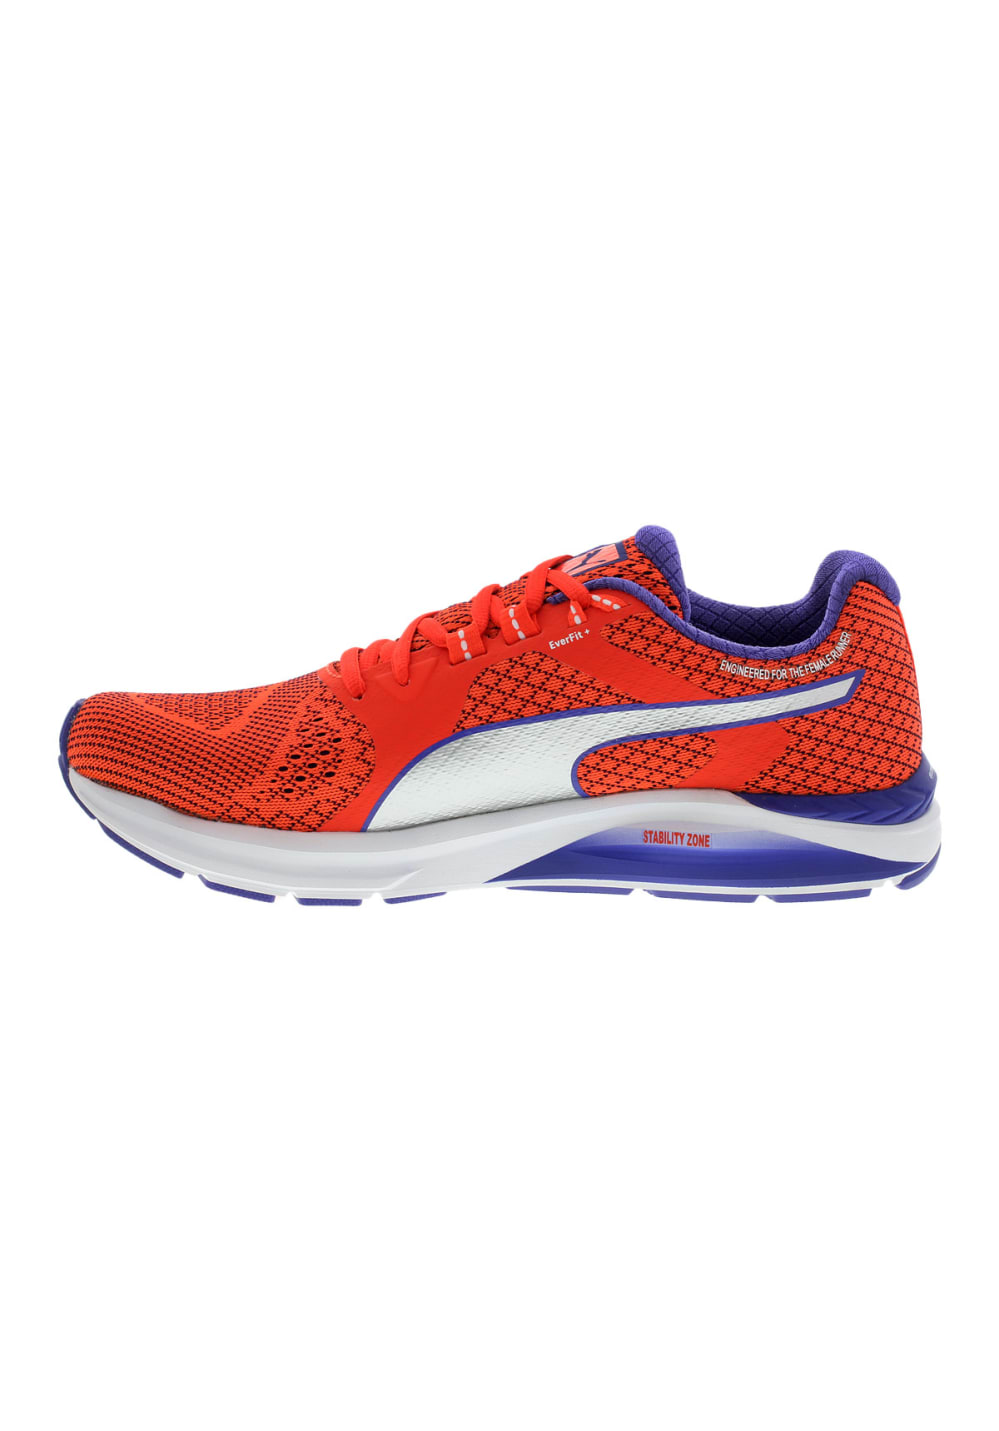 Next. -60%. Puma. Speed 600 S IGNITE - Running shoes for Women. Regular ... 4aa1c5fee